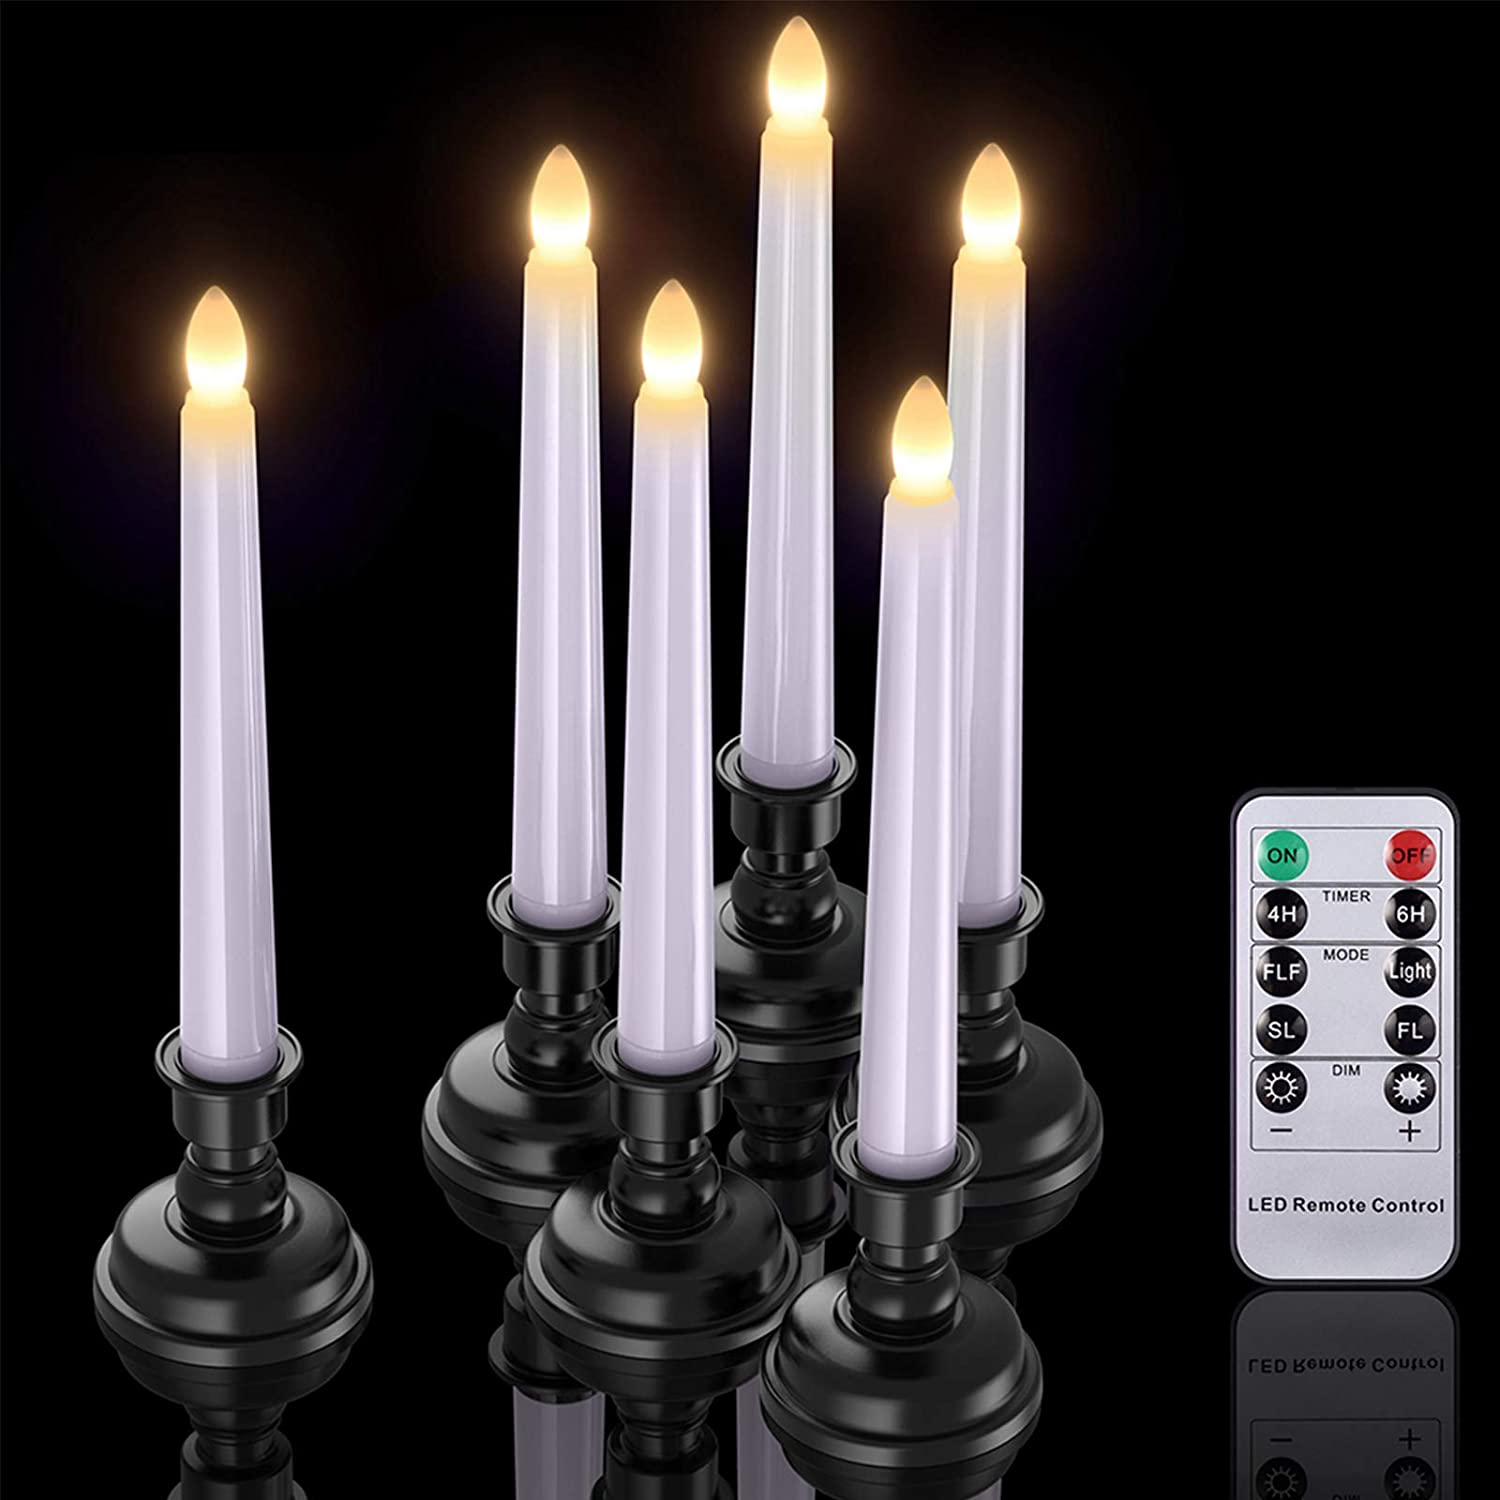 LED Taper Candles with Timers, PChero 6 Pack Flameless Battery Operated Flickering Window Candles with Remote and Candlestick Holders for Thanksgiving Christmas Home Decorations